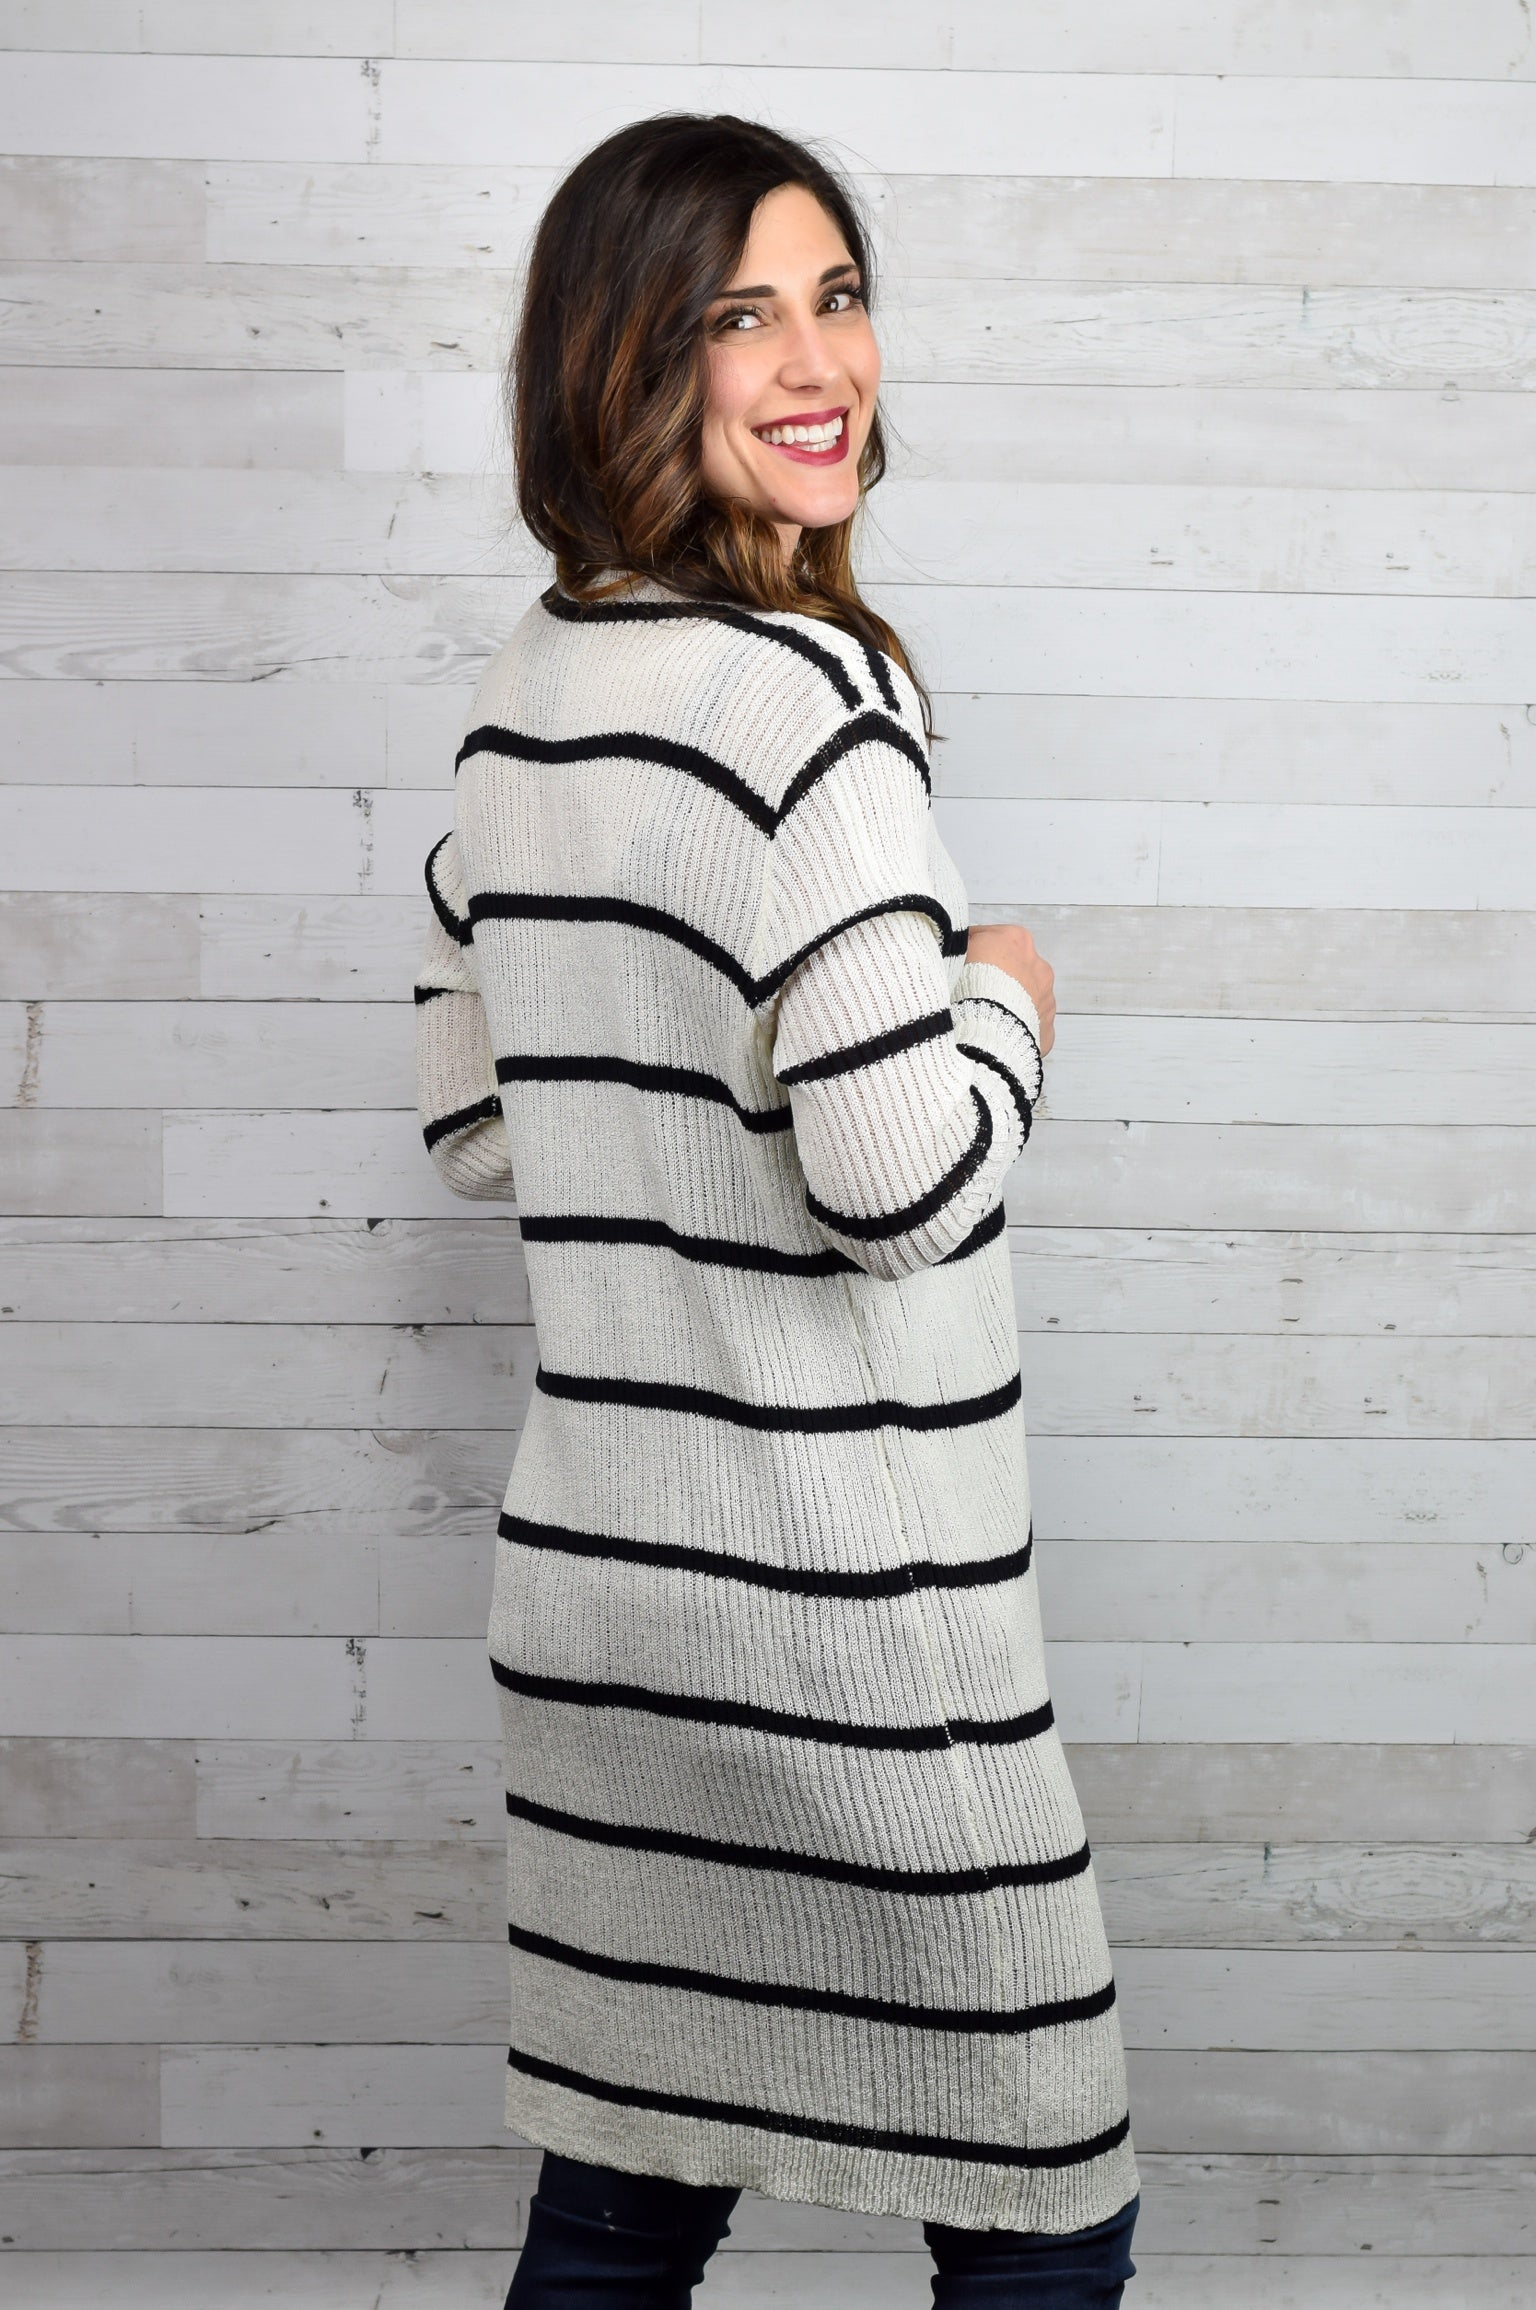 Sweet Sunsets Cardigan- black and white